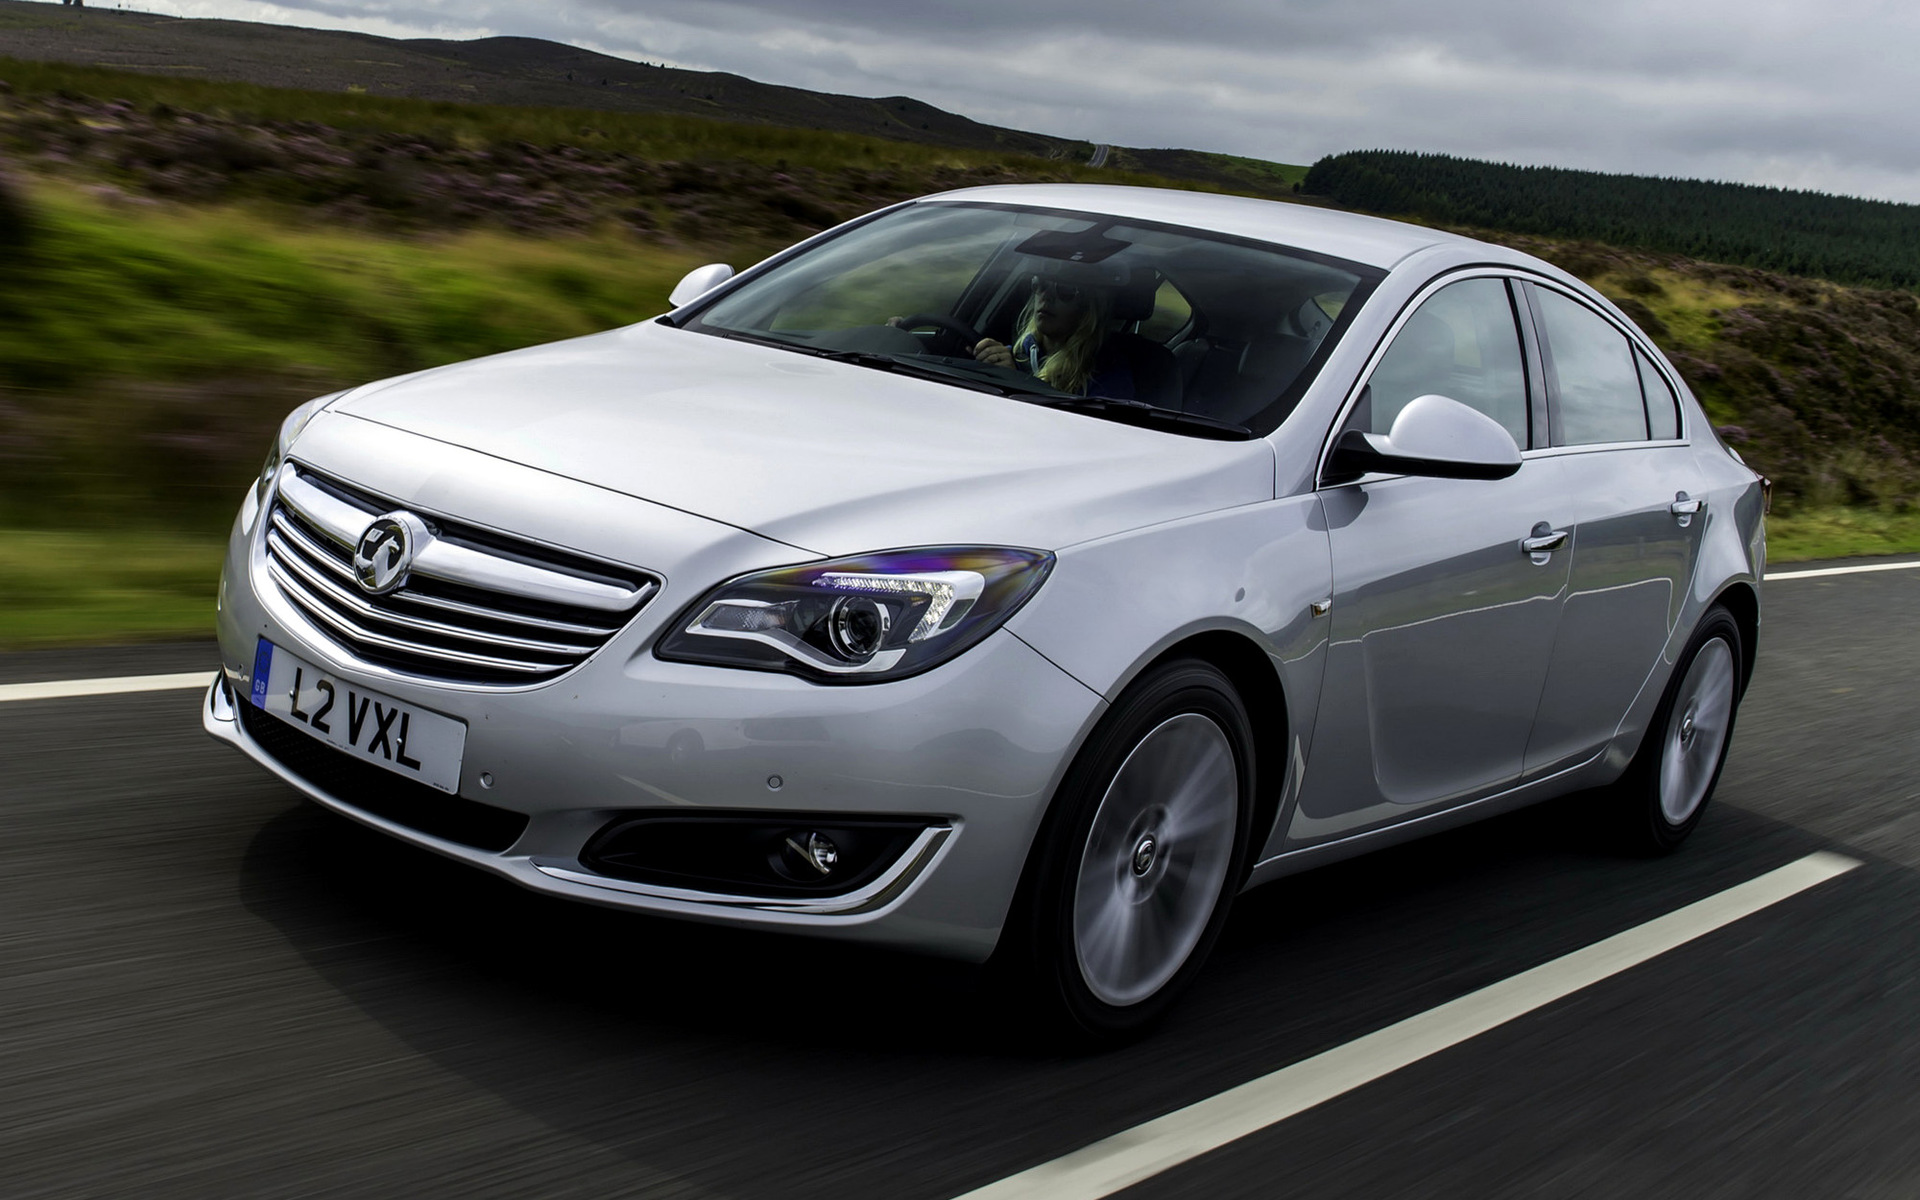 Vauxhall Insignia EcoFLEX Hatchback 2013 Wallpapers And